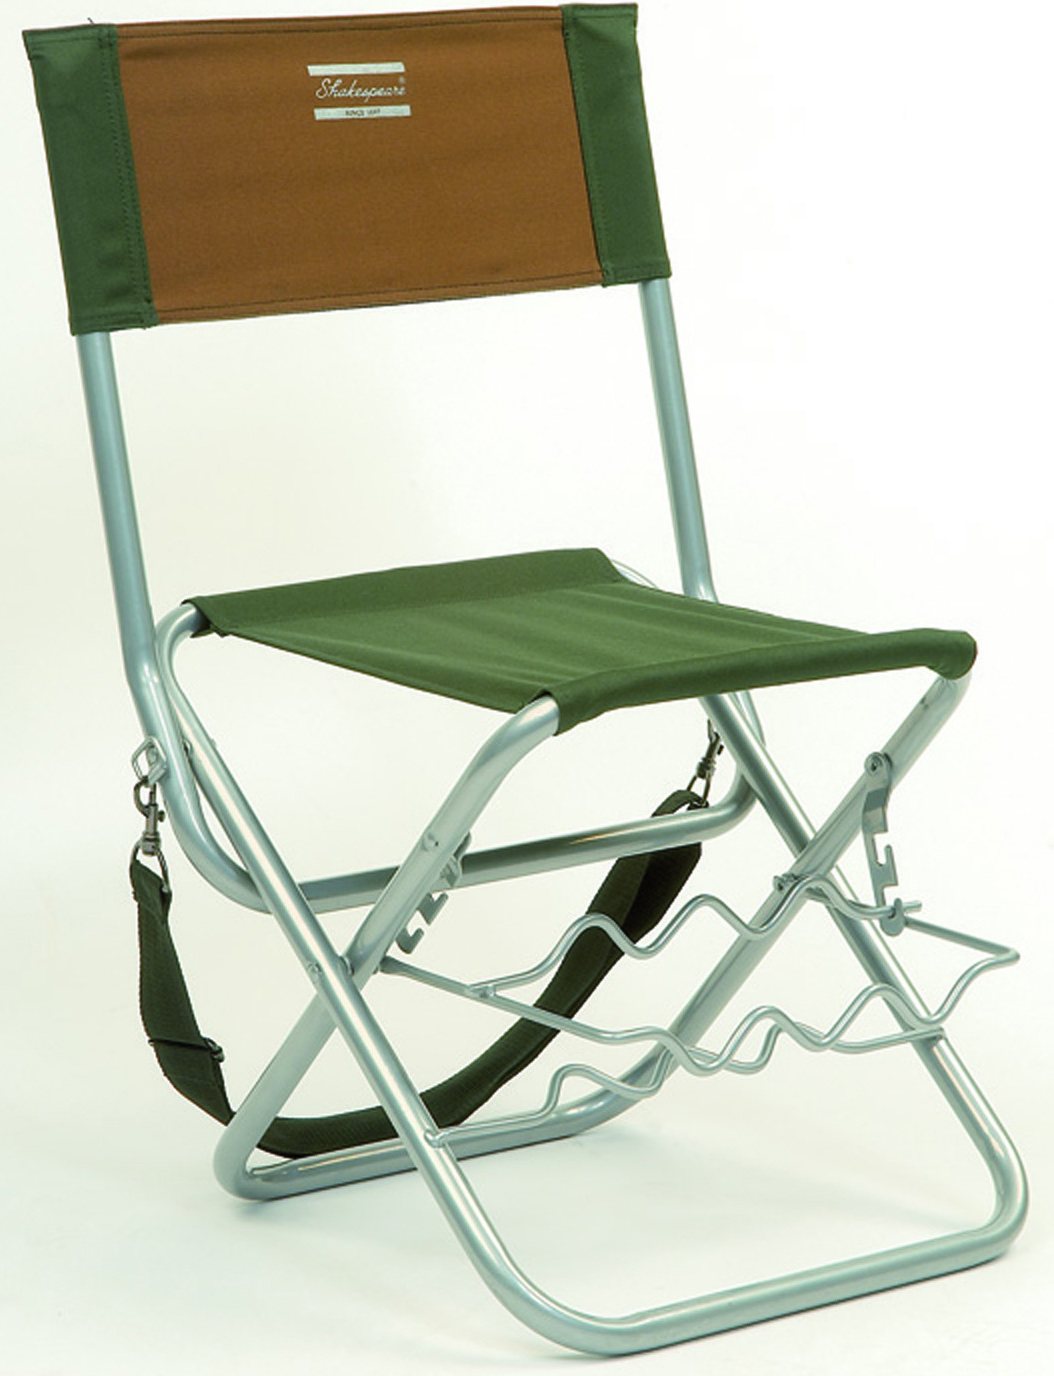 Shakespeare Folding Chair With Rod Rest – Glasgow Angling Centre